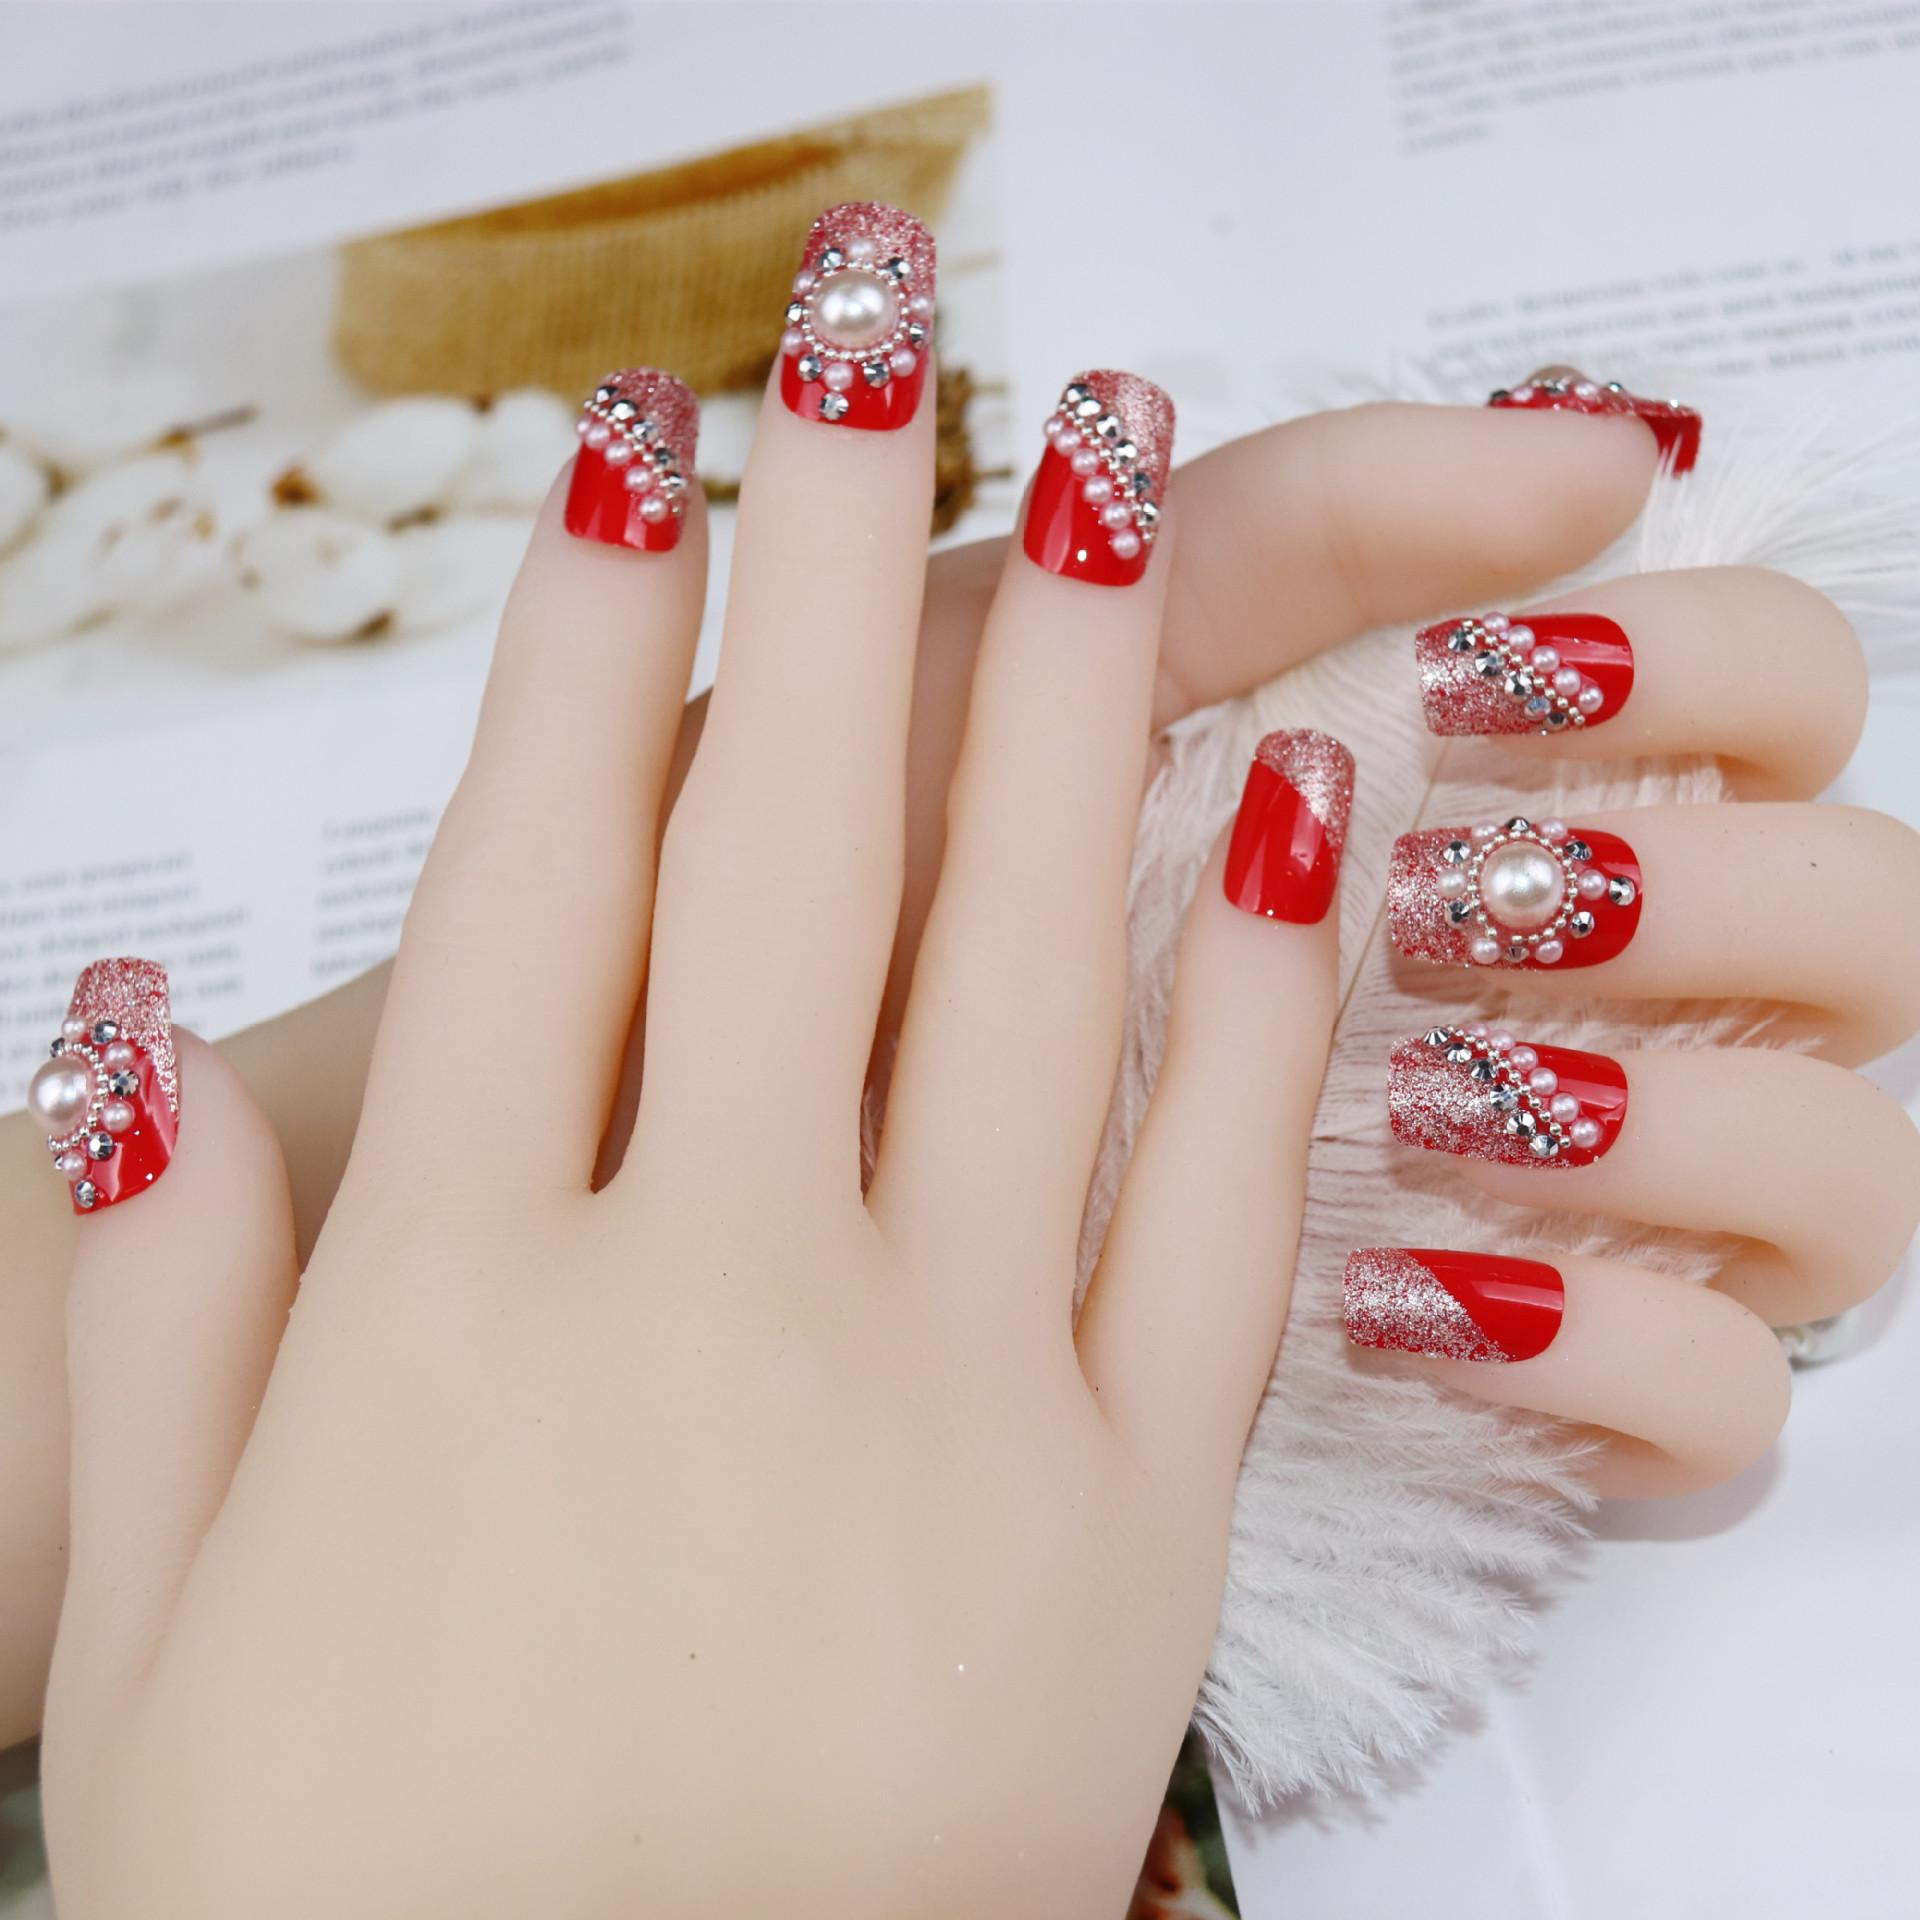 2019 Adhesives, finished nails, bridesmaid, married, dressed in nails, red  bead